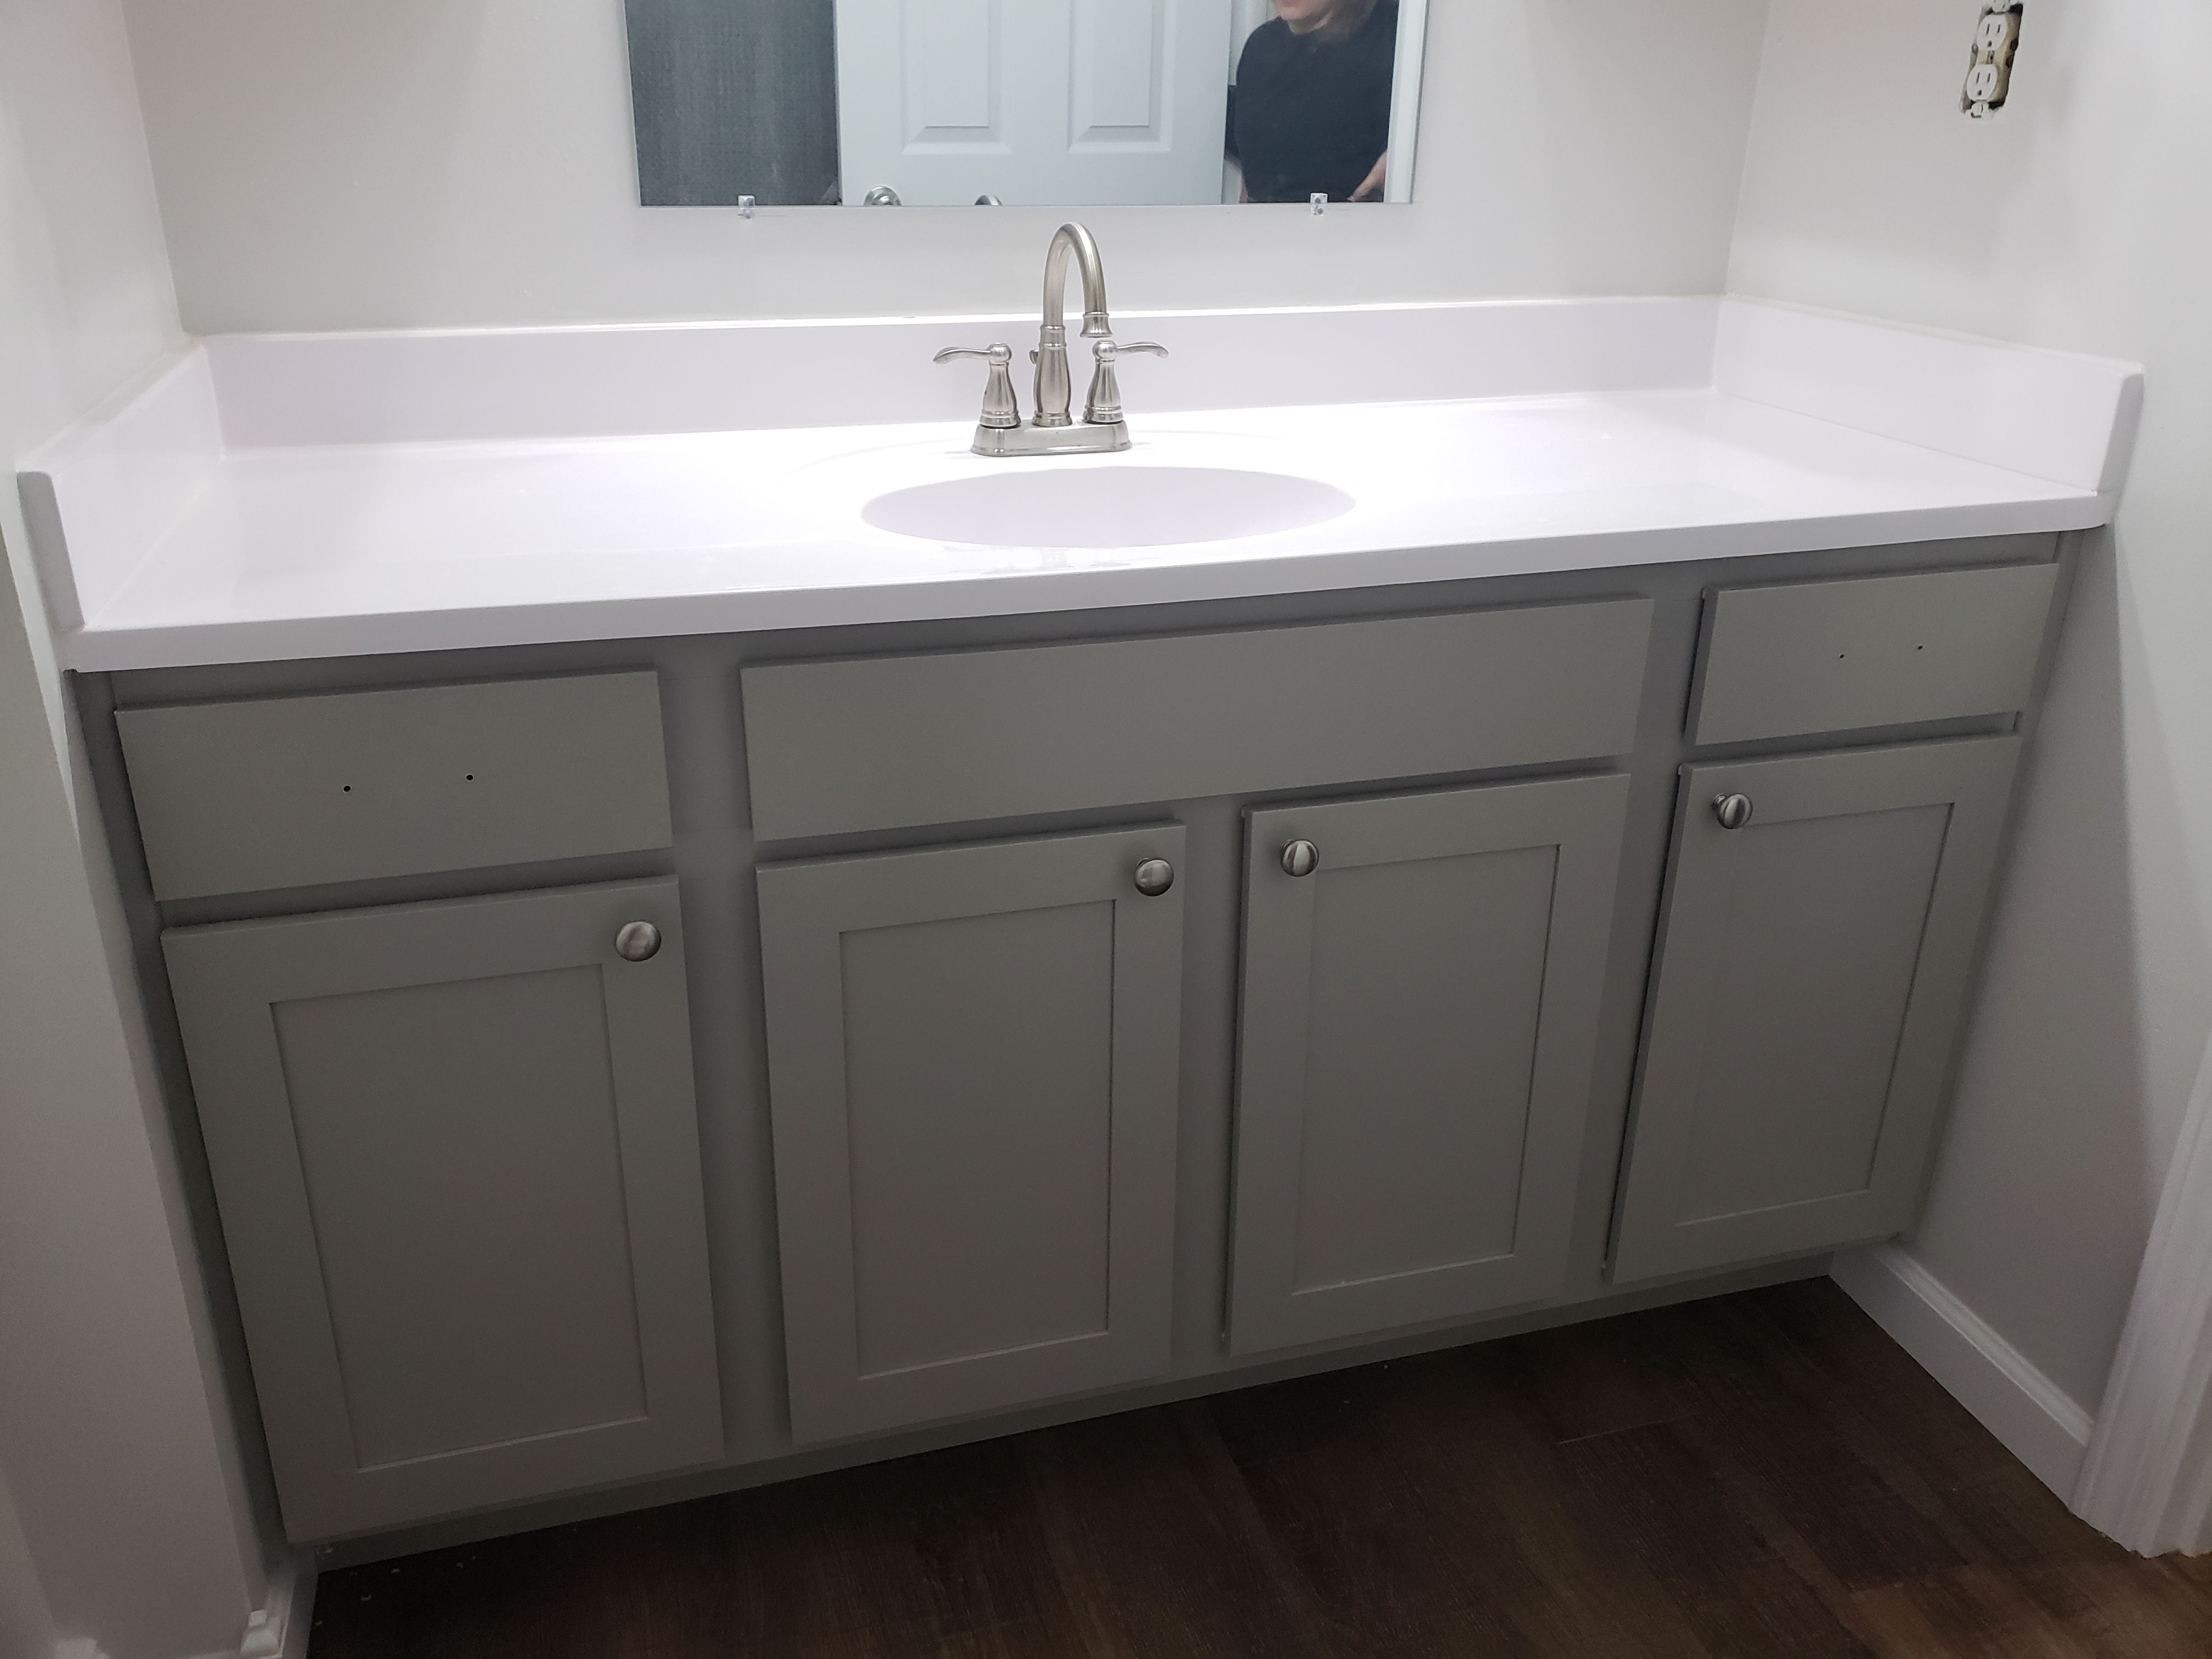 Pin by Lawrenceburg Winsupply on Carrie's Kitchen & Bath ...